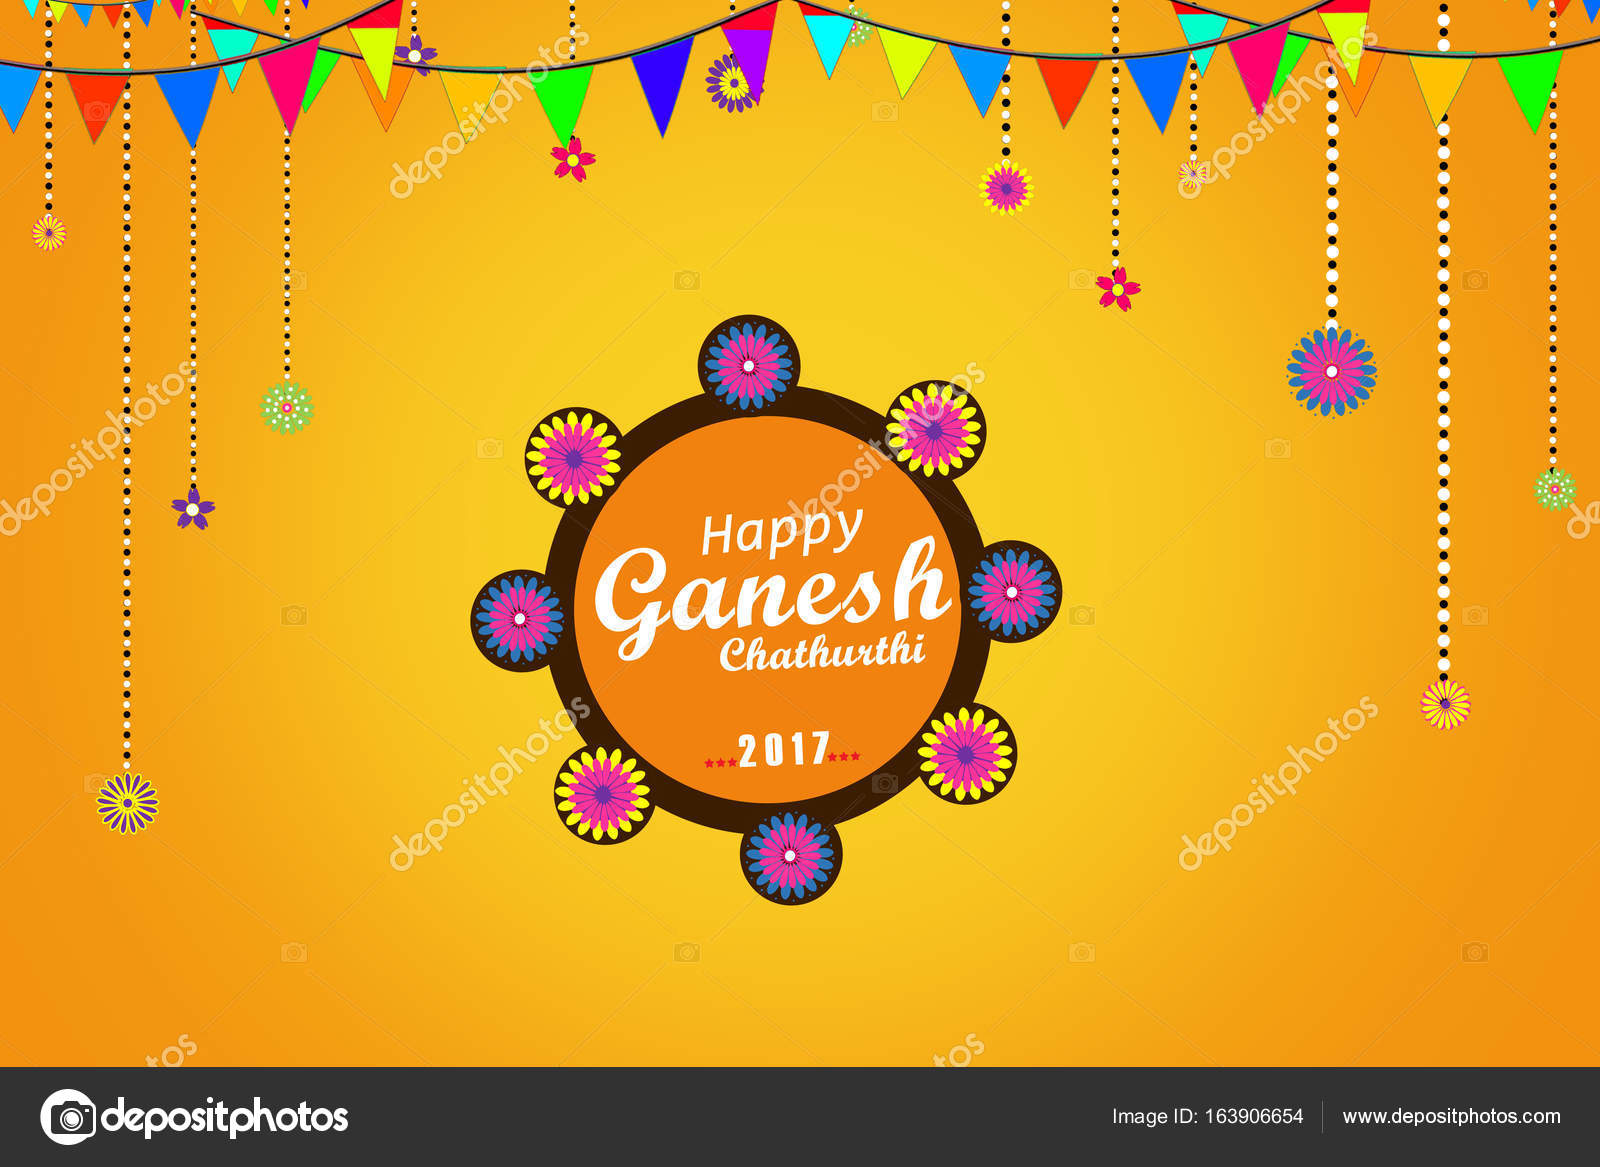 Happy ganesh chaturthi festival greeting card or poster design happy ganesh chaturthi festival greeting card or poster design stock photo m4hsunfo